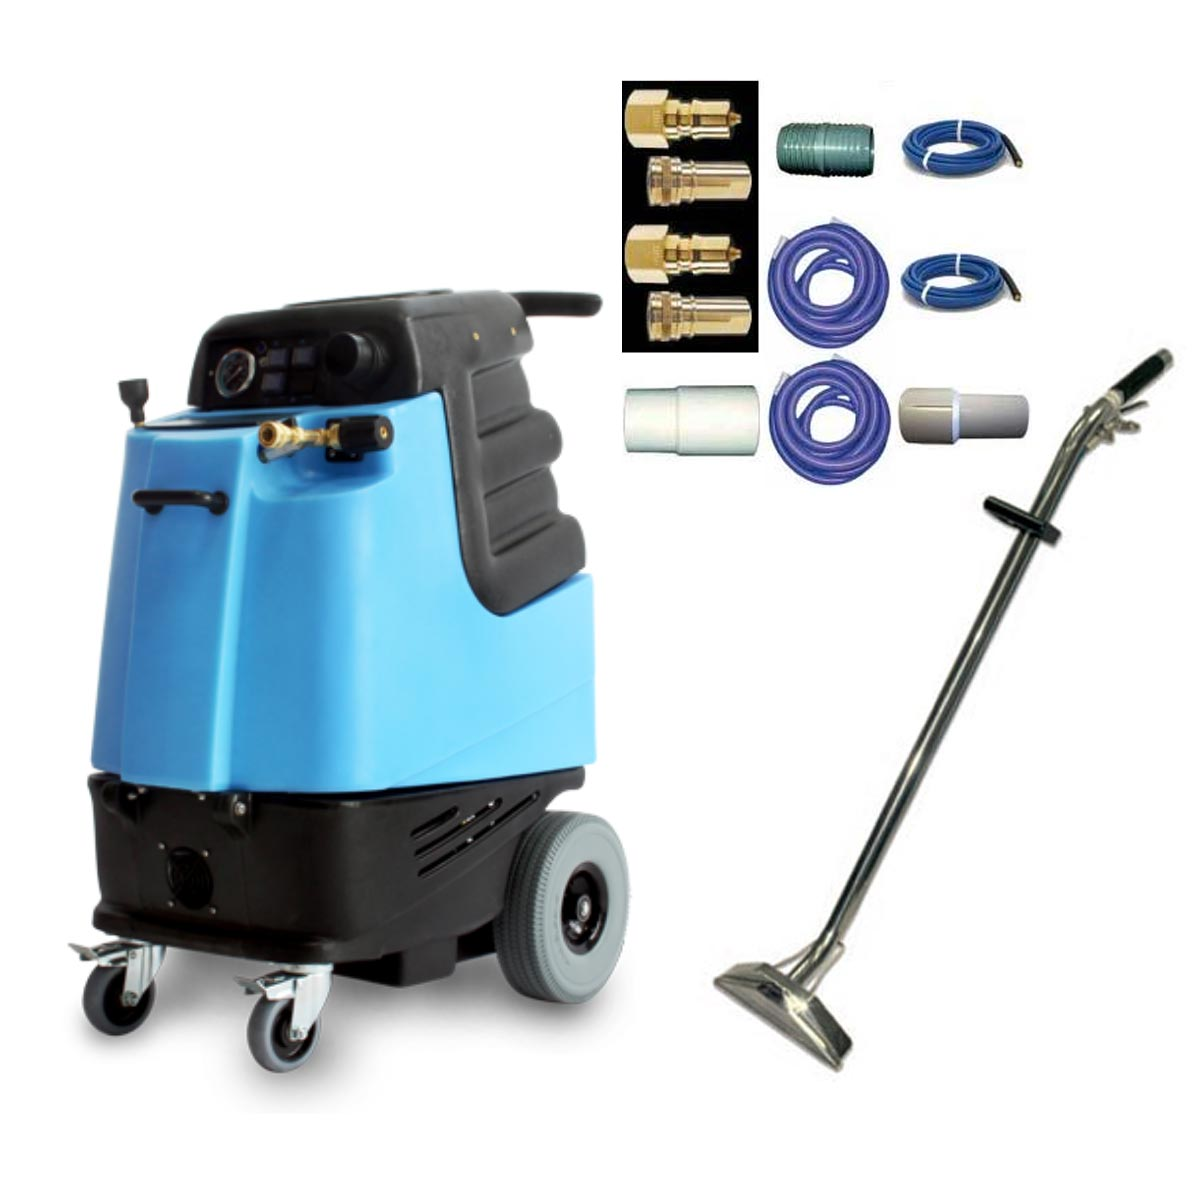 Mytee 1005LX Set Carpet Cleaning Machine 12gal 500psi Dual 6.6 Vacuum Extractor 65 ft Hose Set Wand Chemicals Bundle